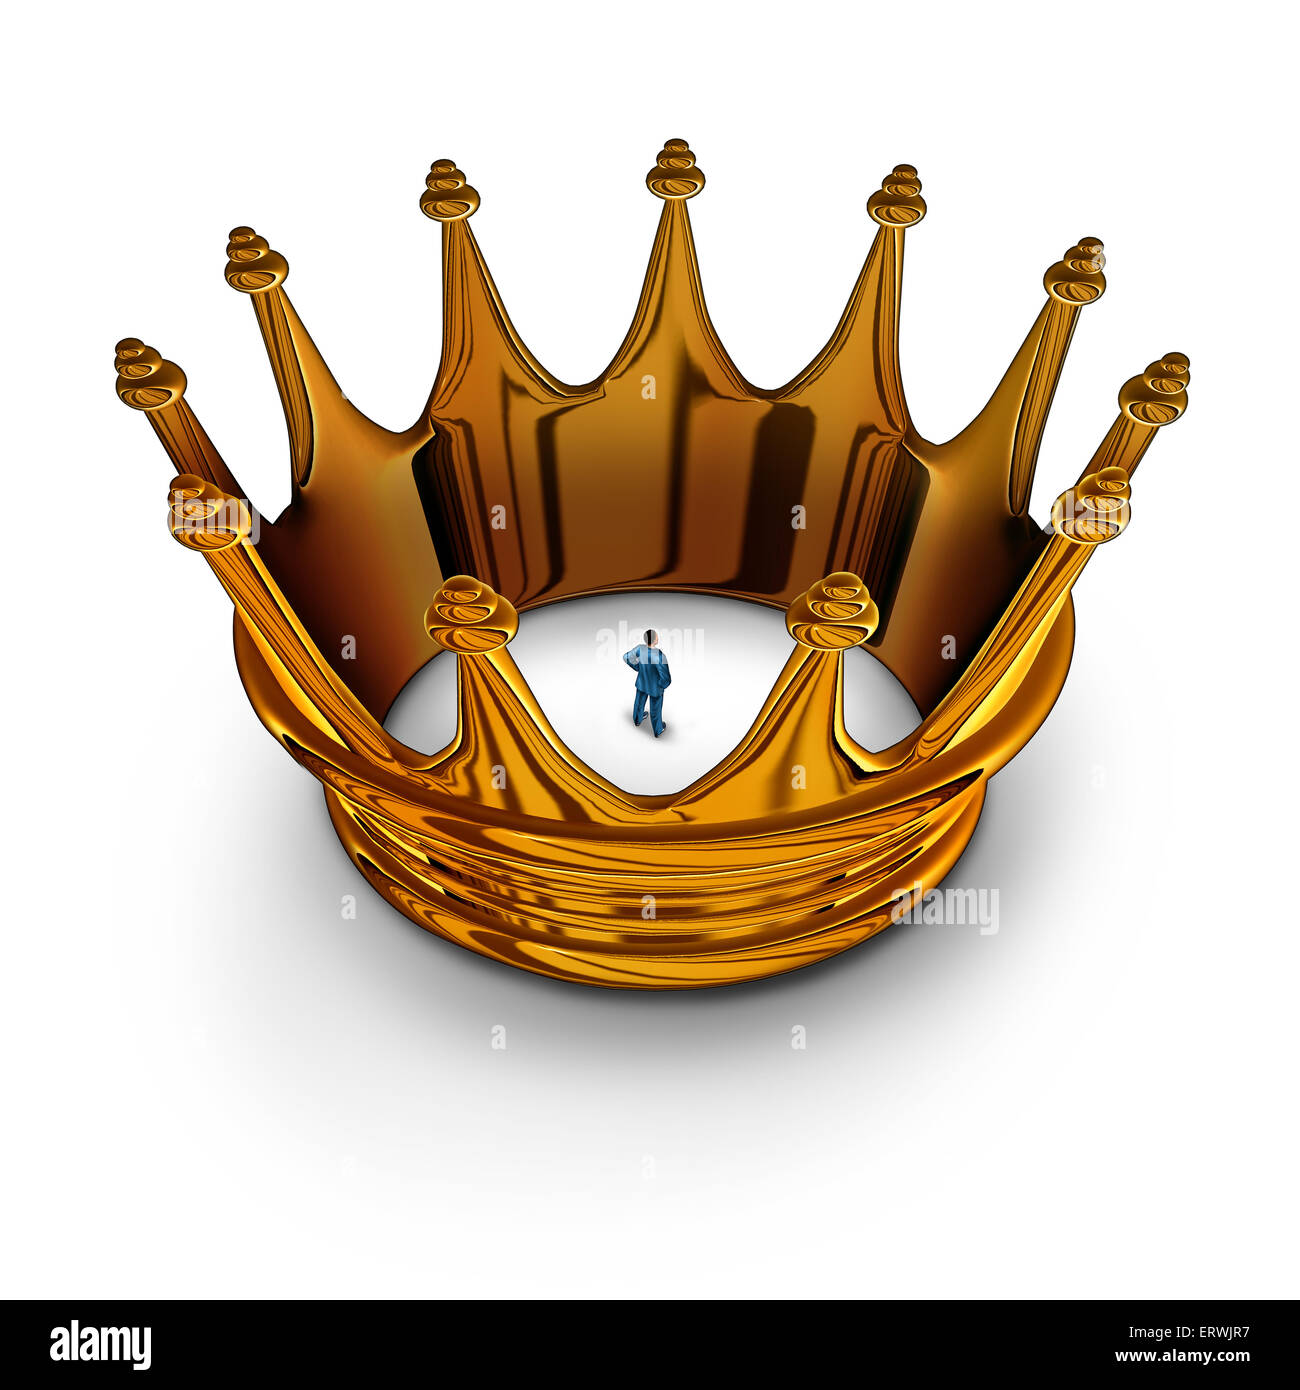 Leadership prisoner business concept as a businessman trapped and restricted inside a gold king crown as a metaphor - Stock Image